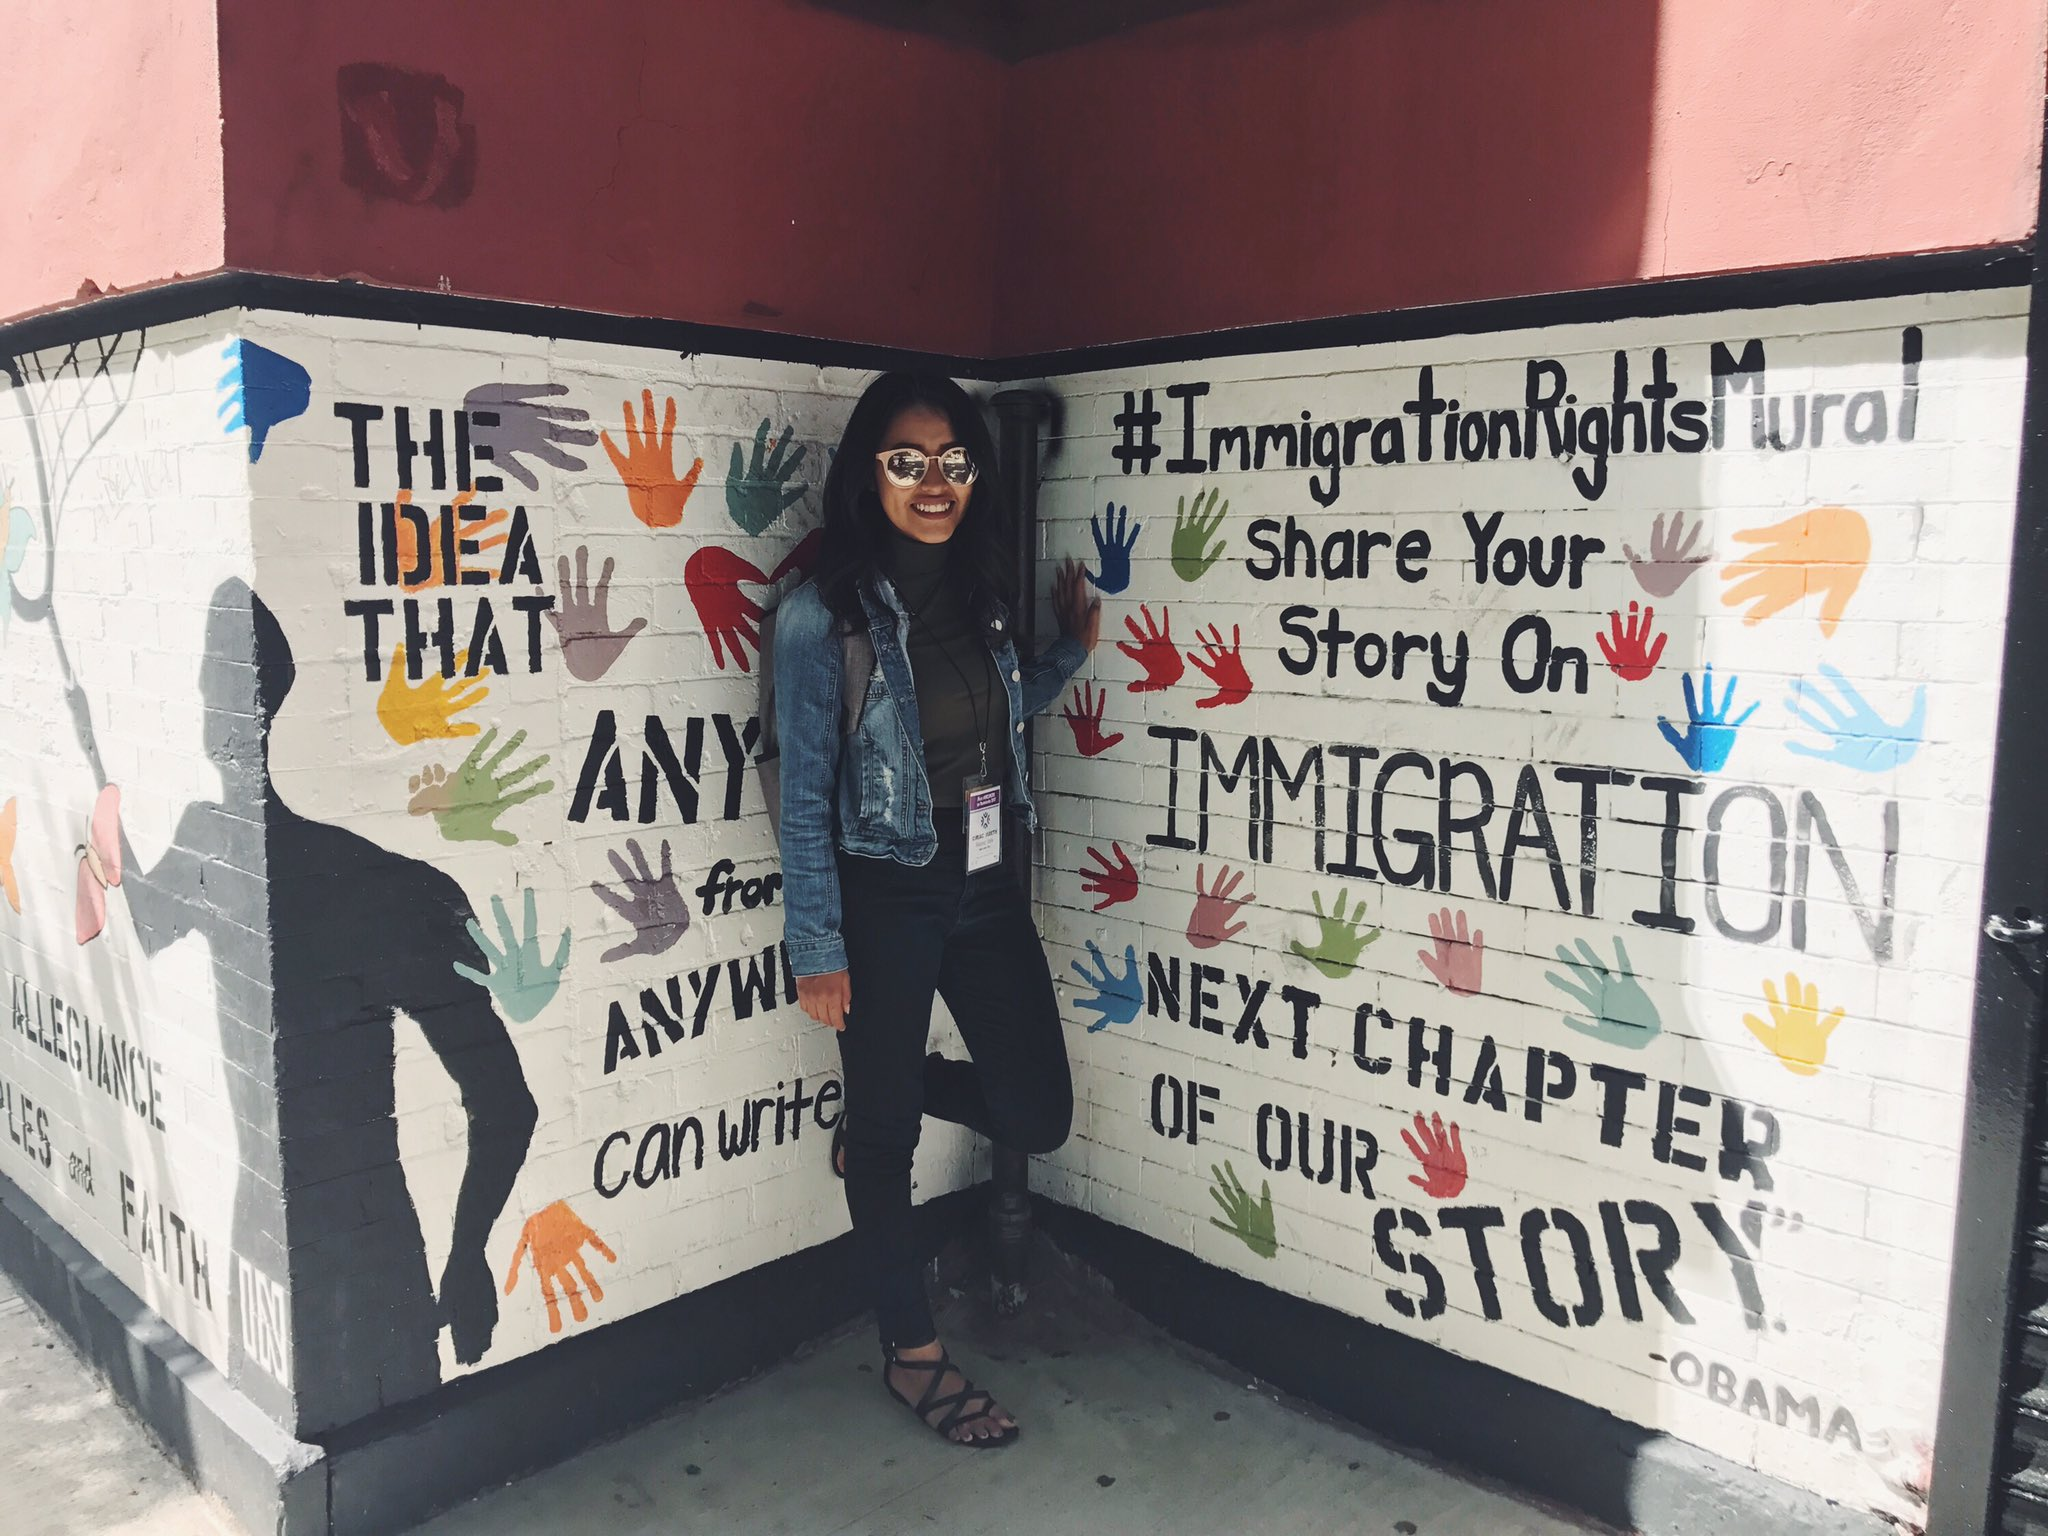 Thumbnail for Dreamers, Advocates Respond to Threats Against DACA